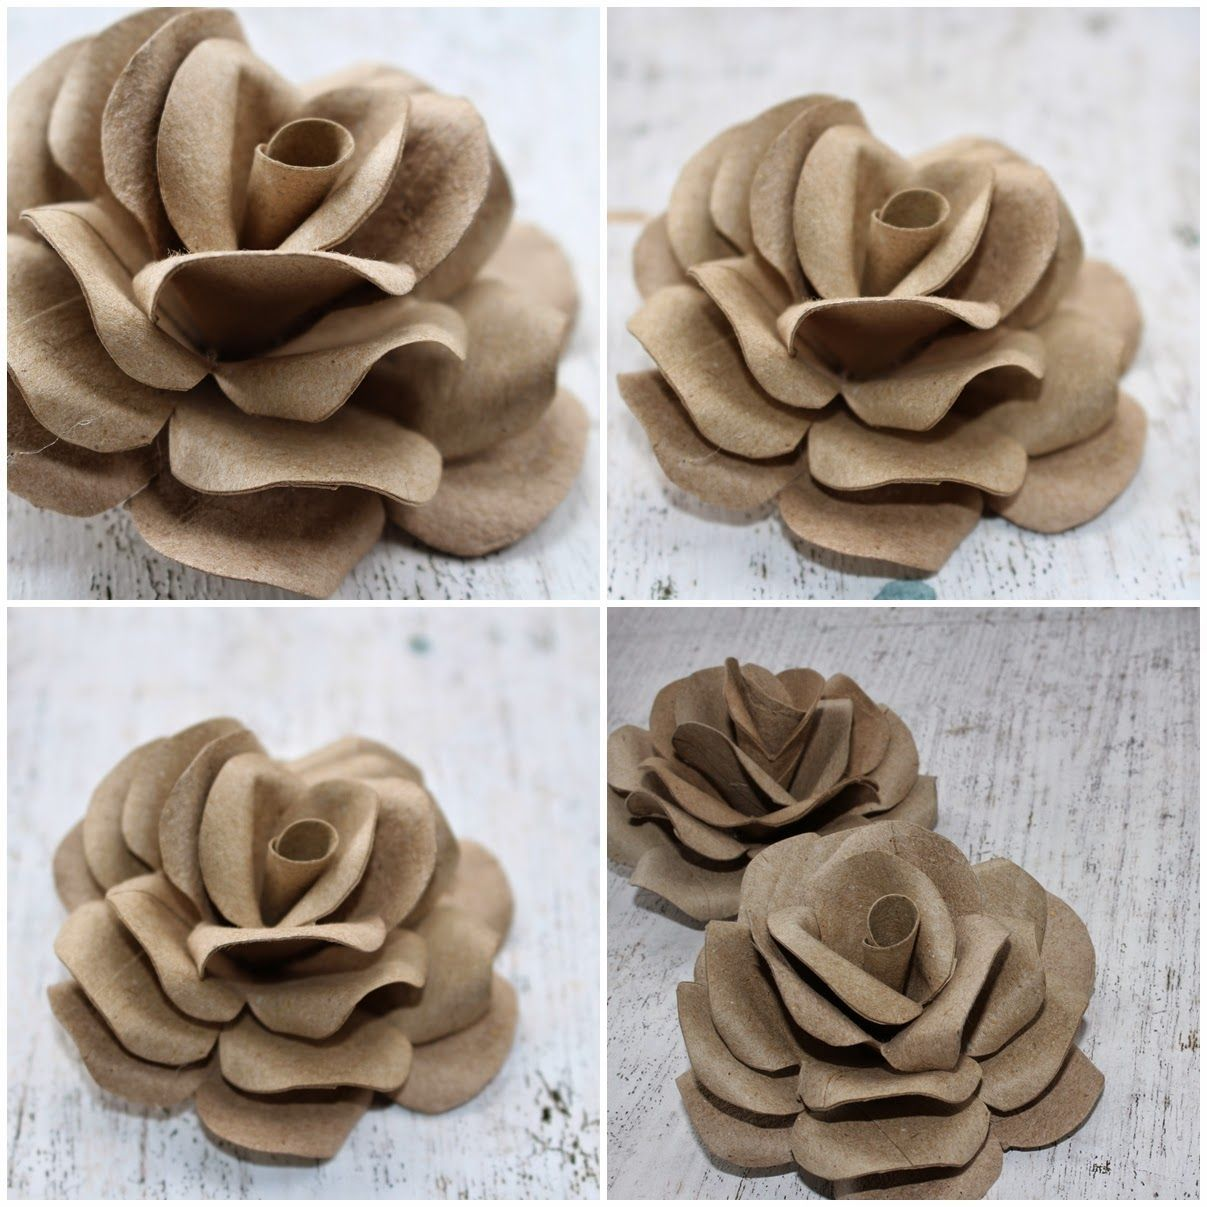 Diy how to make roses using empty toilet tissue tubes reduce diy how to make roses using empty toilet tissue tubesthough id probably use paper towel rolls instead jeuxipadfo Images